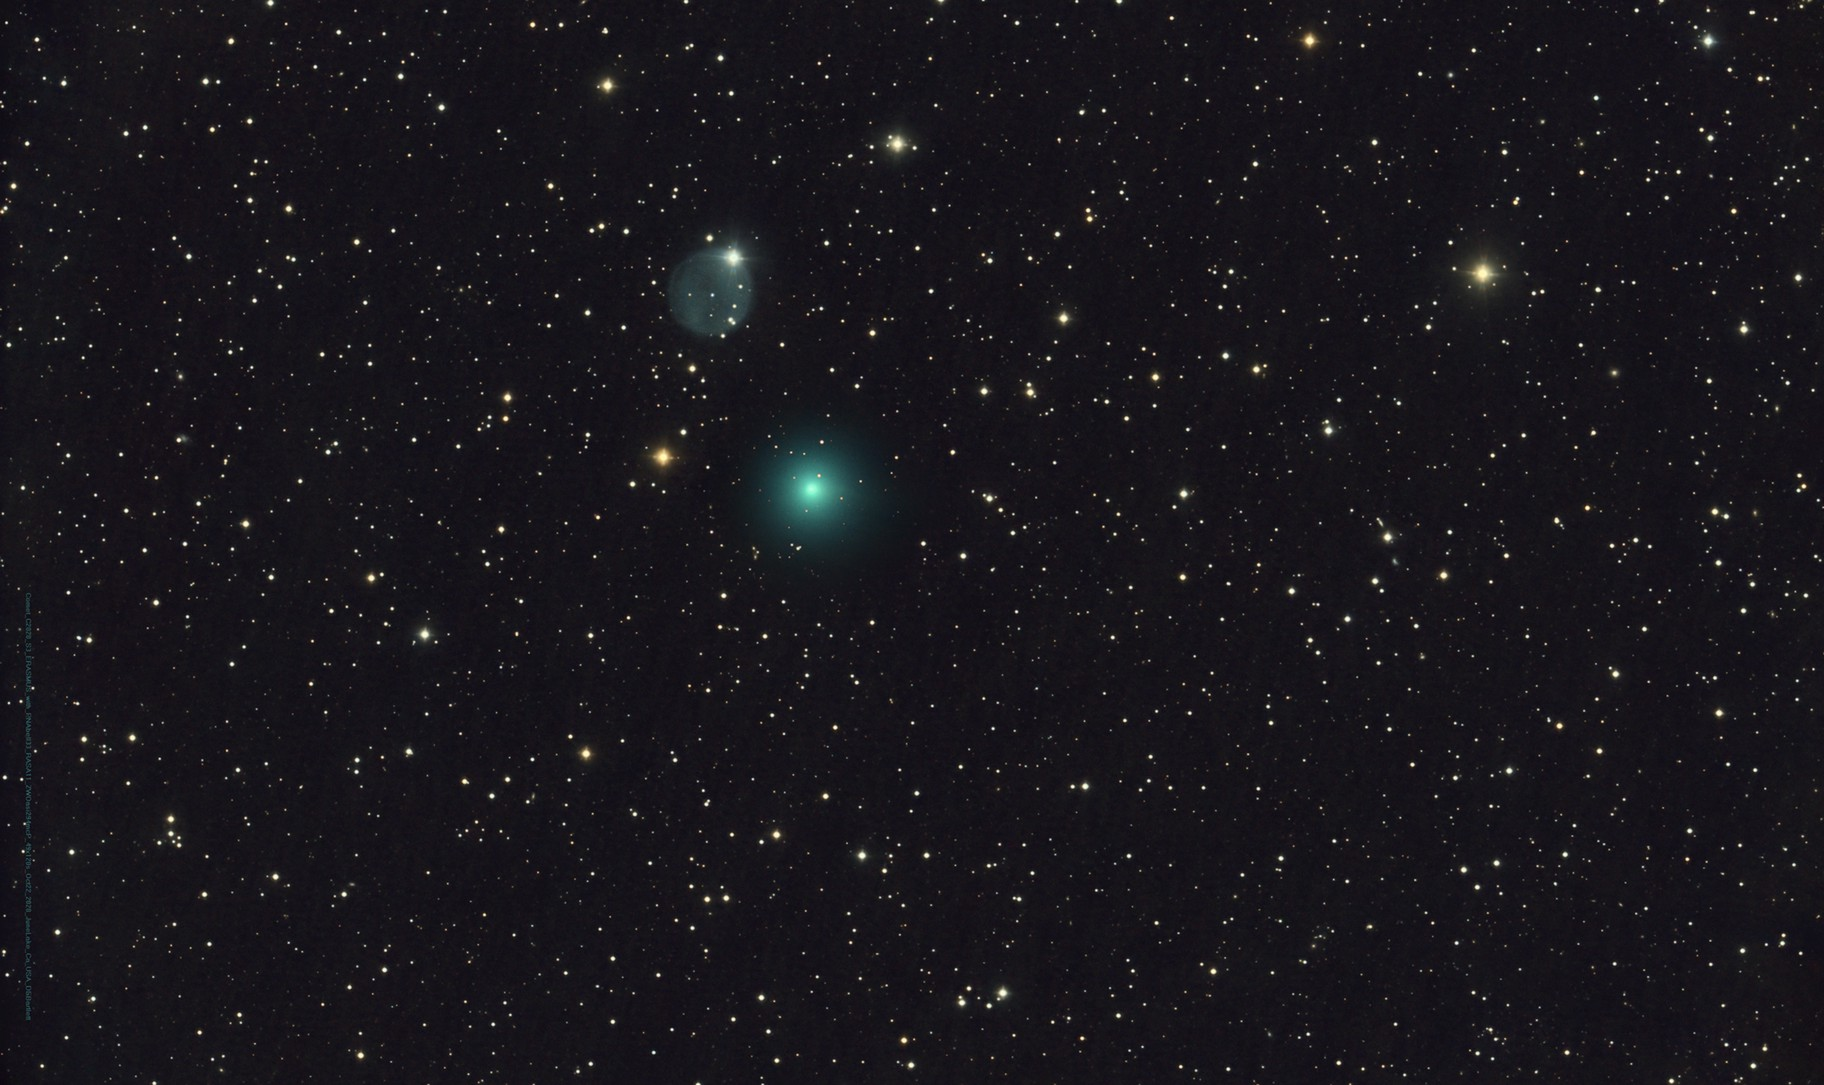 A Ghostly Visit...Comet C/2020 S3 Erasmus closes in on Planetary Nebula Abell 33